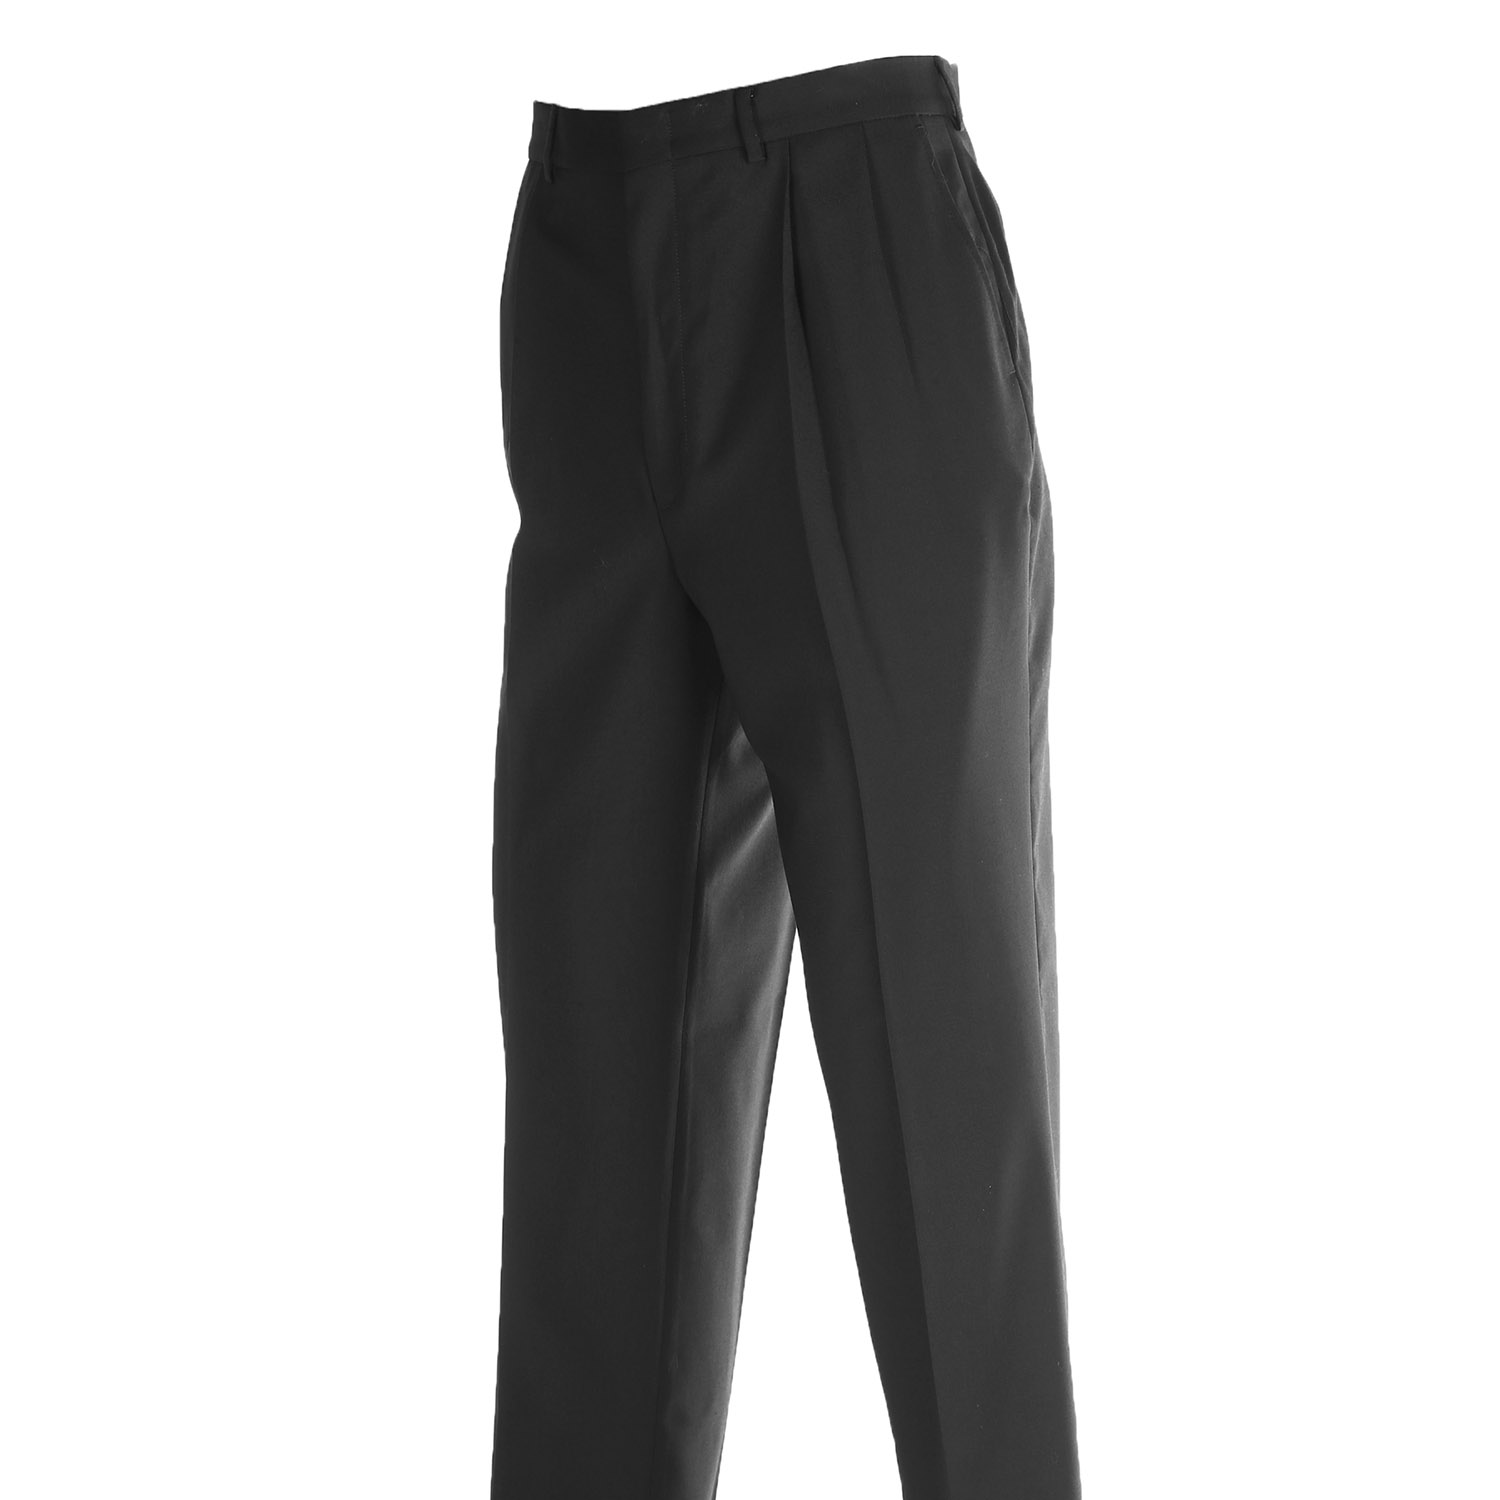 Edwards Pleated Dress Pant